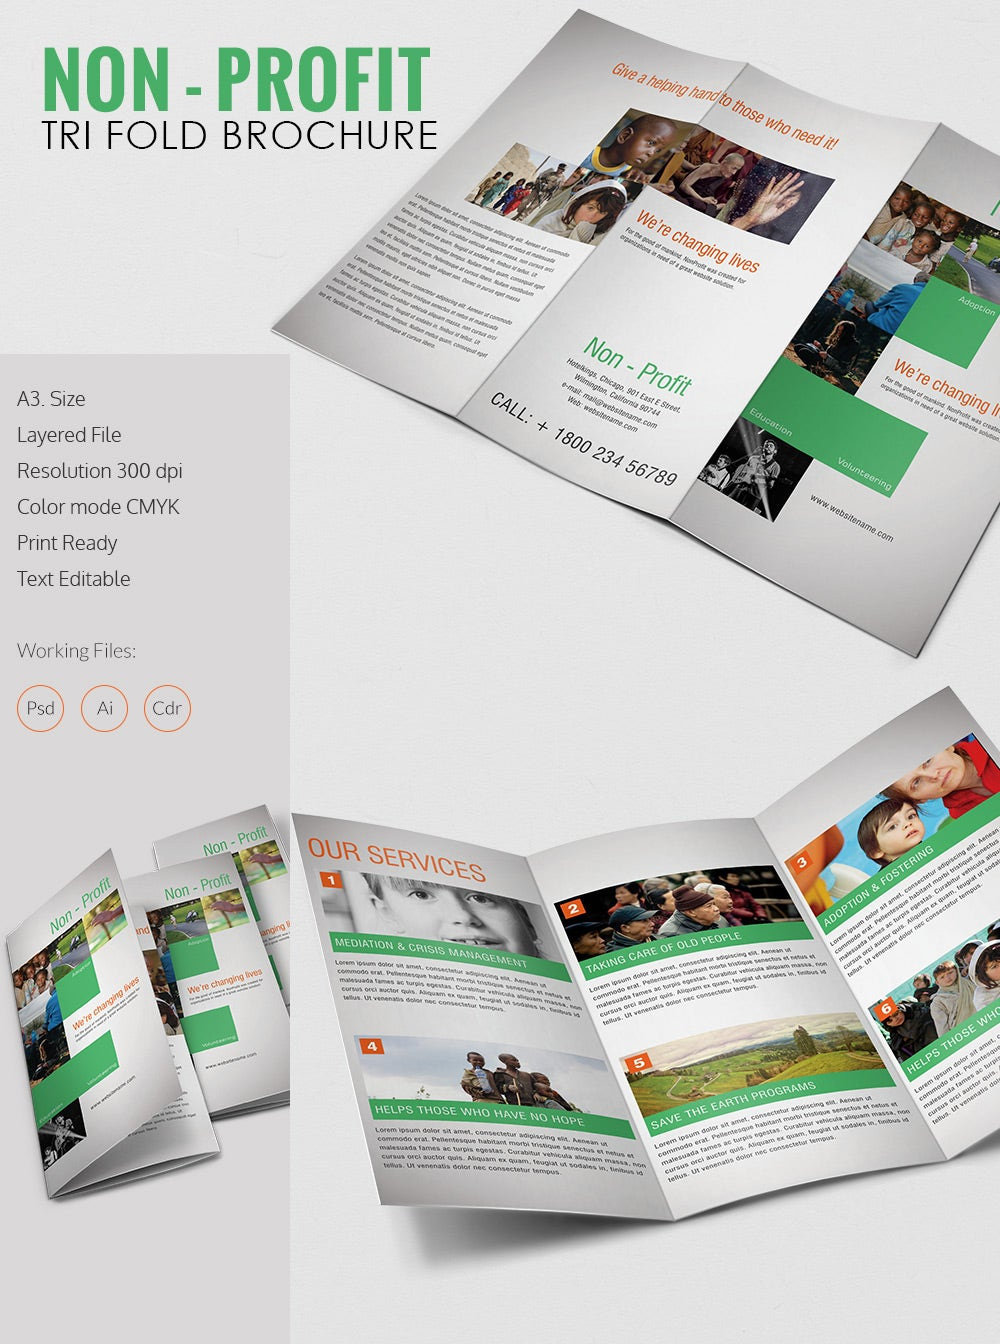 Amazing Non Profit A3 Tri Fold Brochure Template Download | Free ...